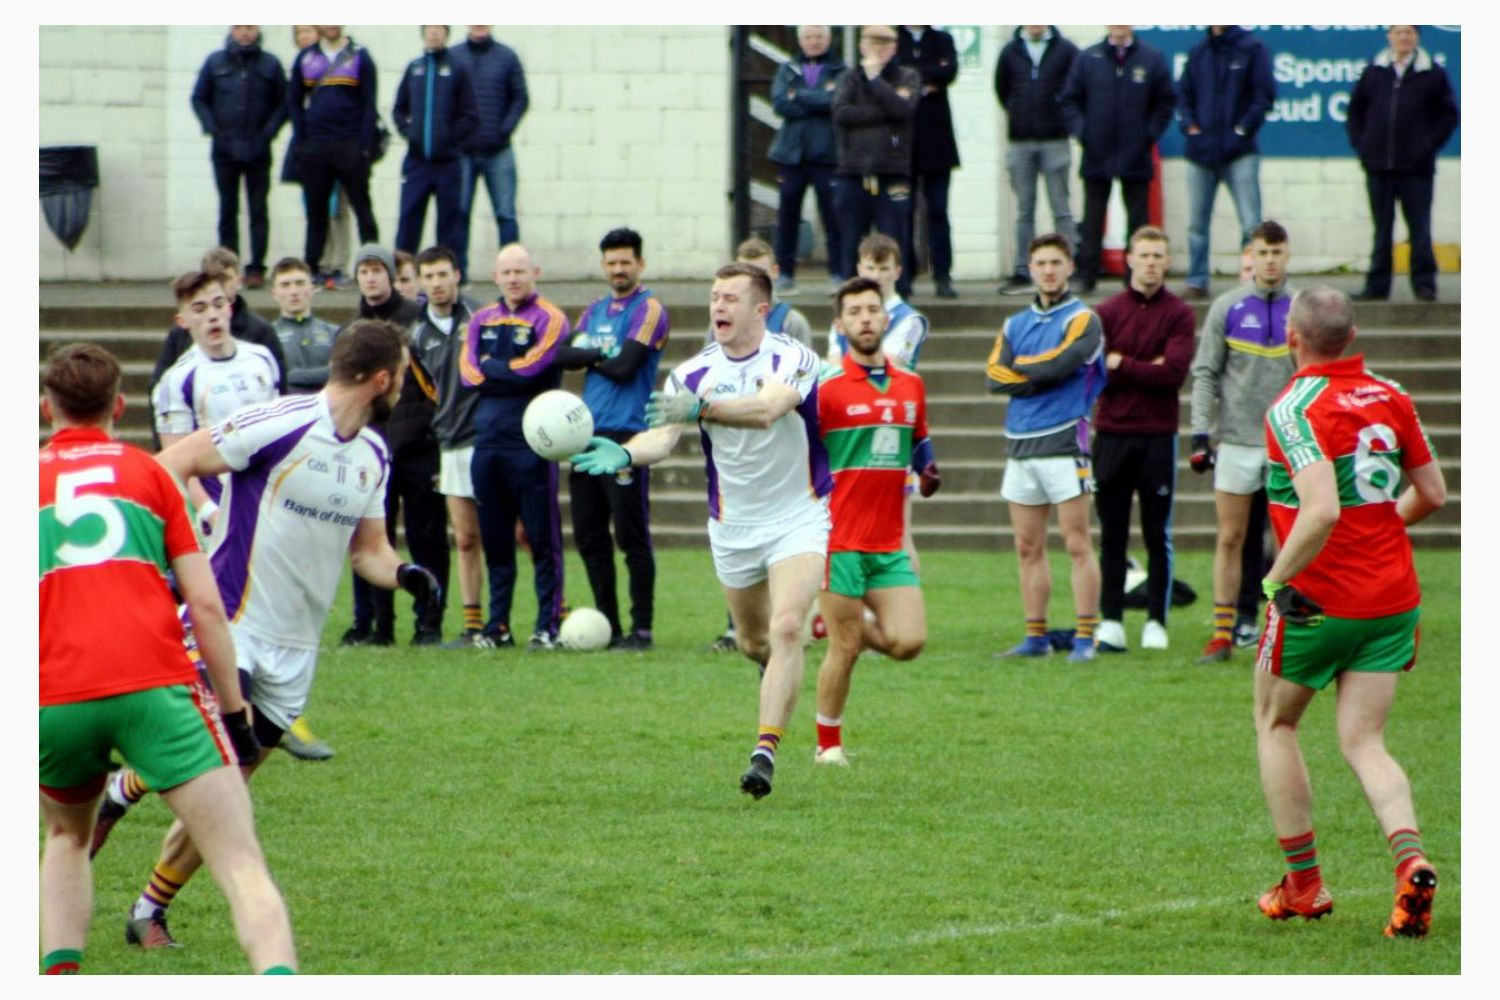 AFL1  record a 1 pt win over Ballymun in their League encounter in Parc De Burca Sunday March 31st